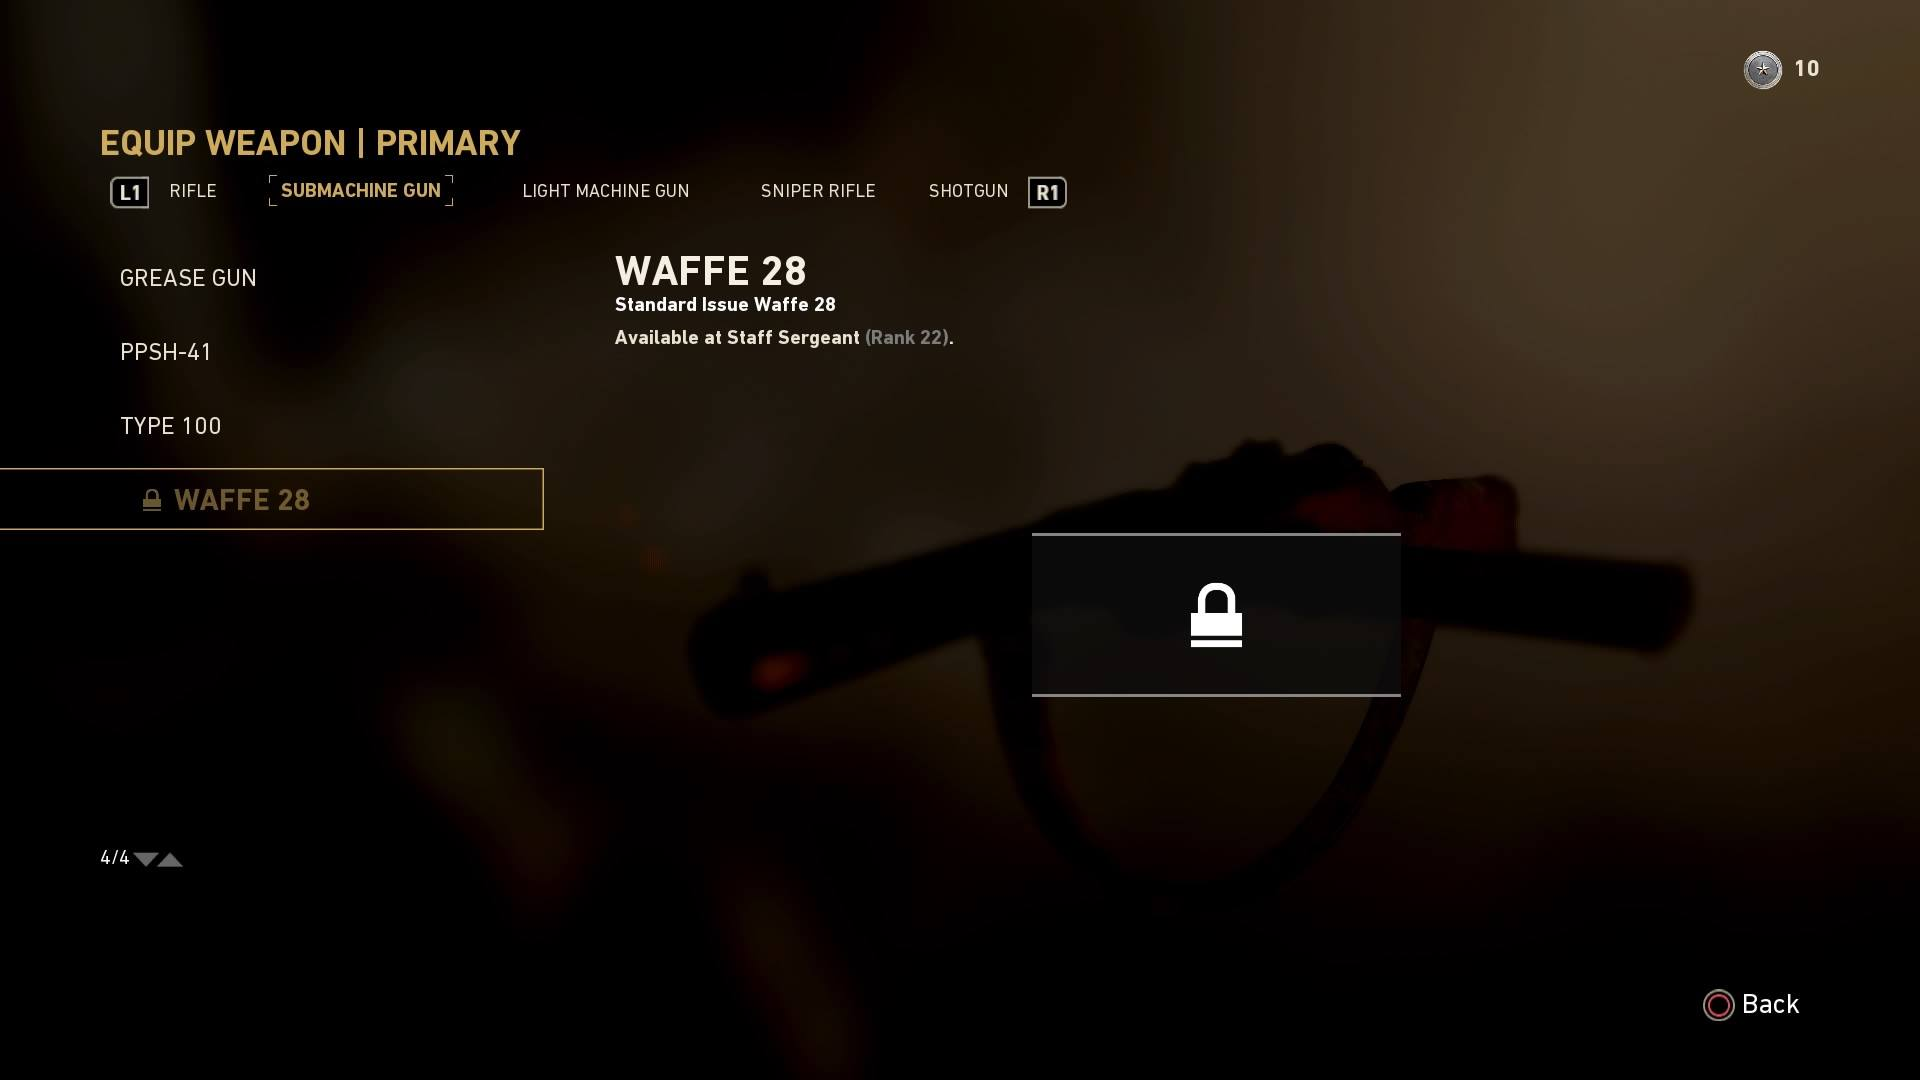 http://charlieintel.com/2017/08/26/call-duty-wwii-private-beta-update-new-level-cap-new-smg-waffe-added-new-scorestreak/